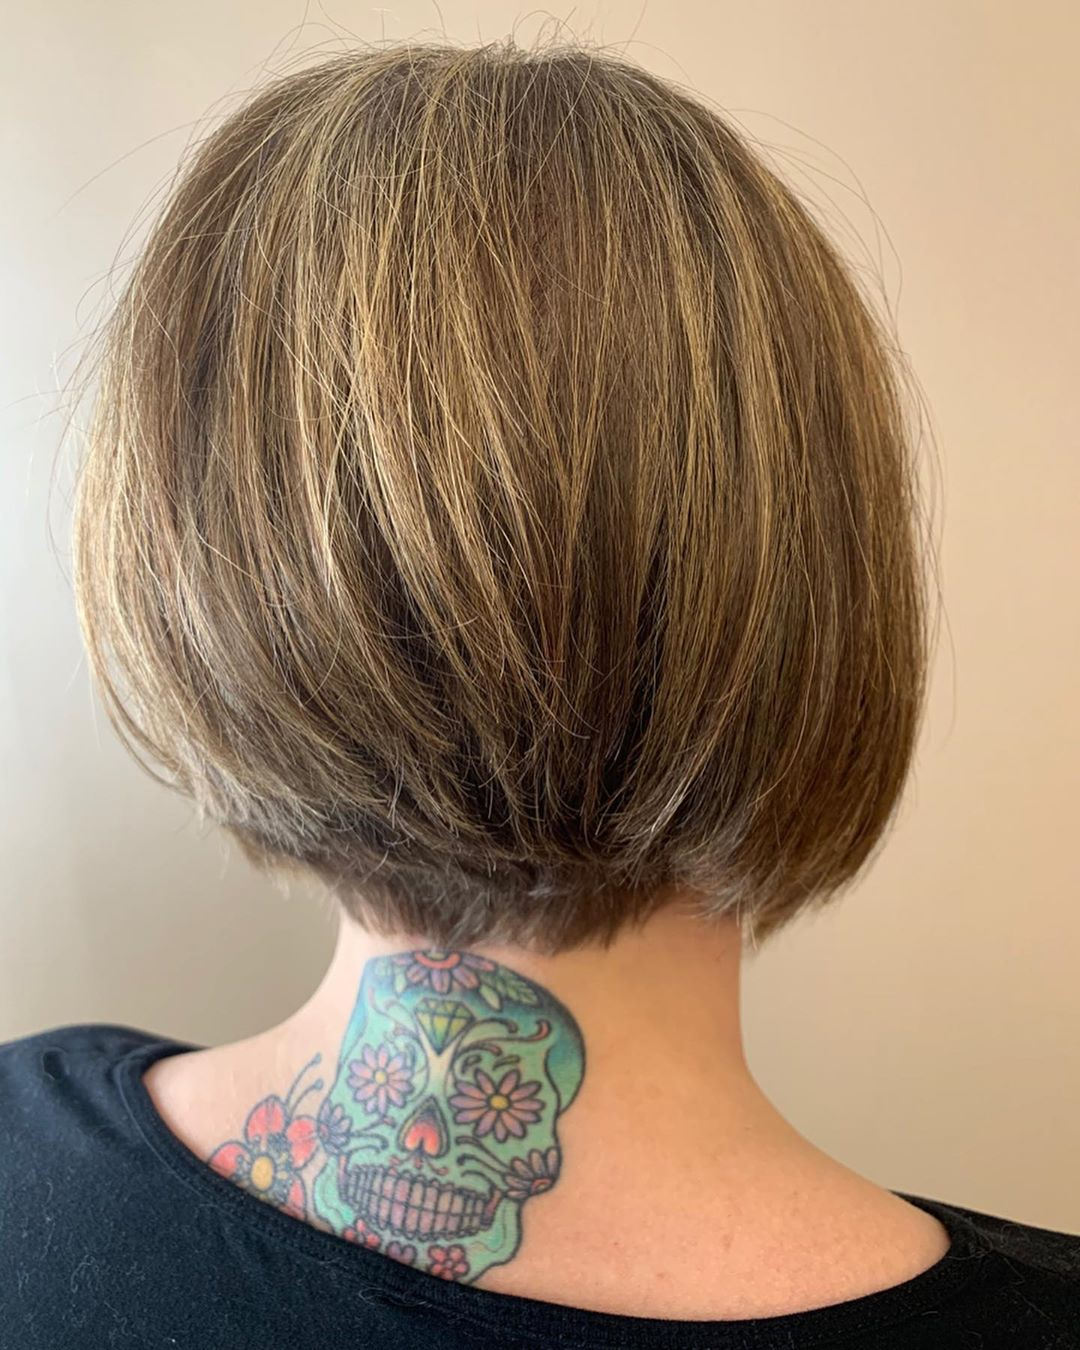 Popular Bob Hairstyles for Women 2020 01